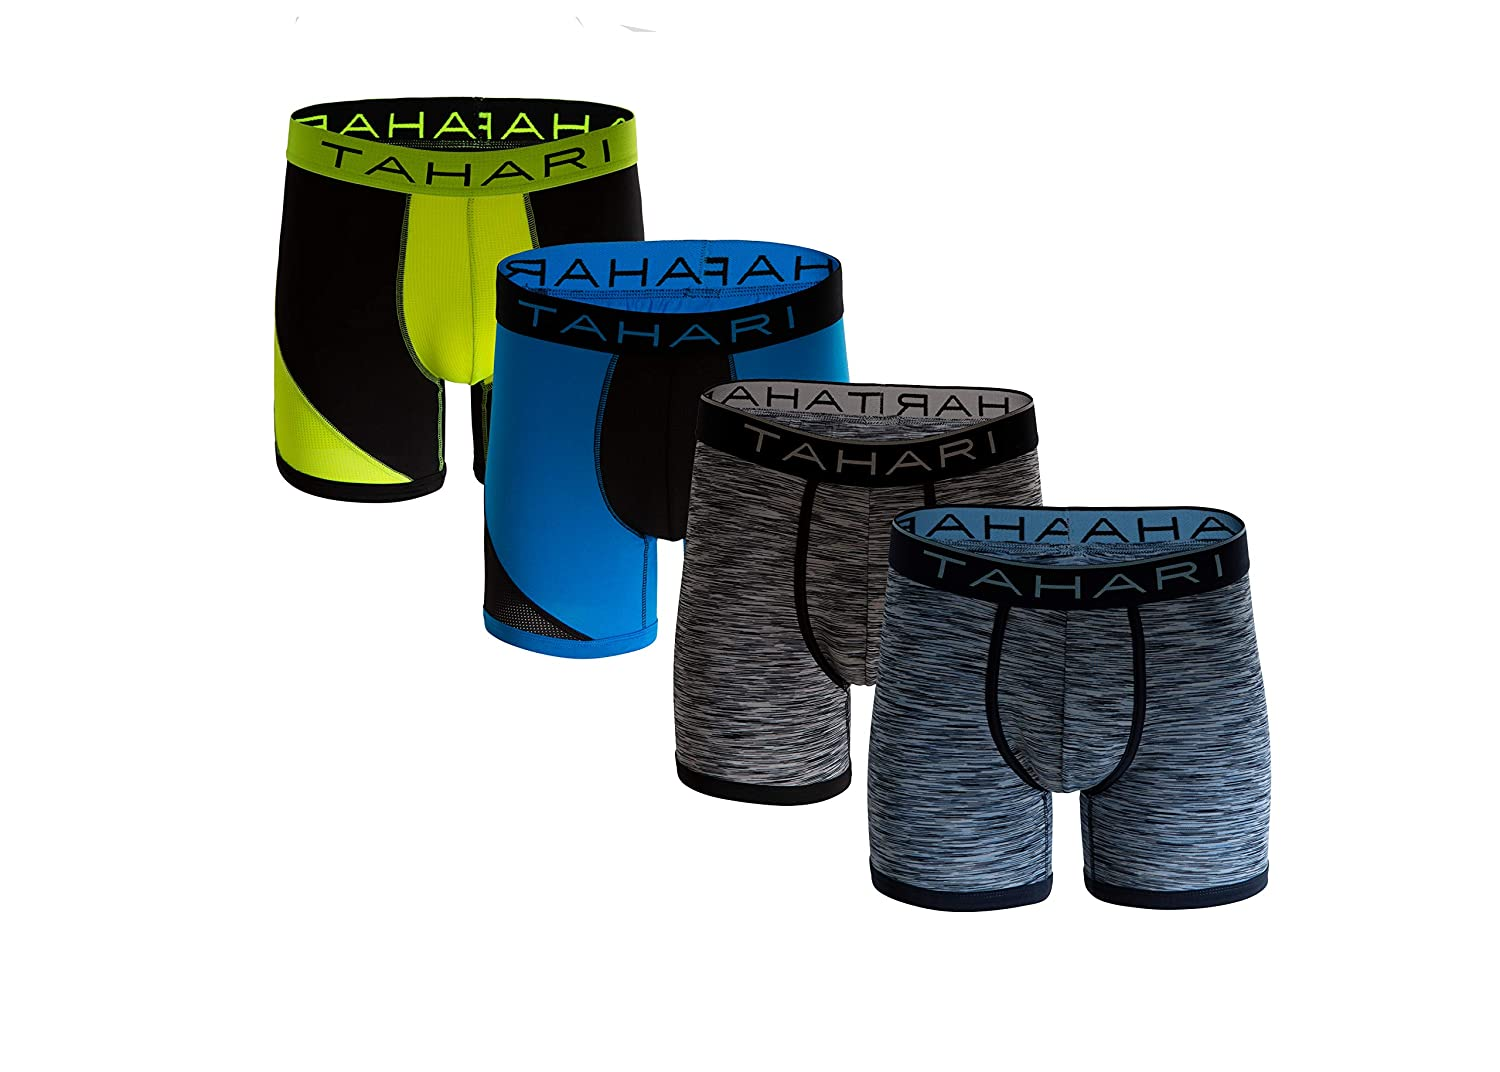 Tahari Men's Micro Modal Boxer Brief with Comfort Waistband 4-Pack Assorted Colors (Tag Less) Trunk 4PackMicro